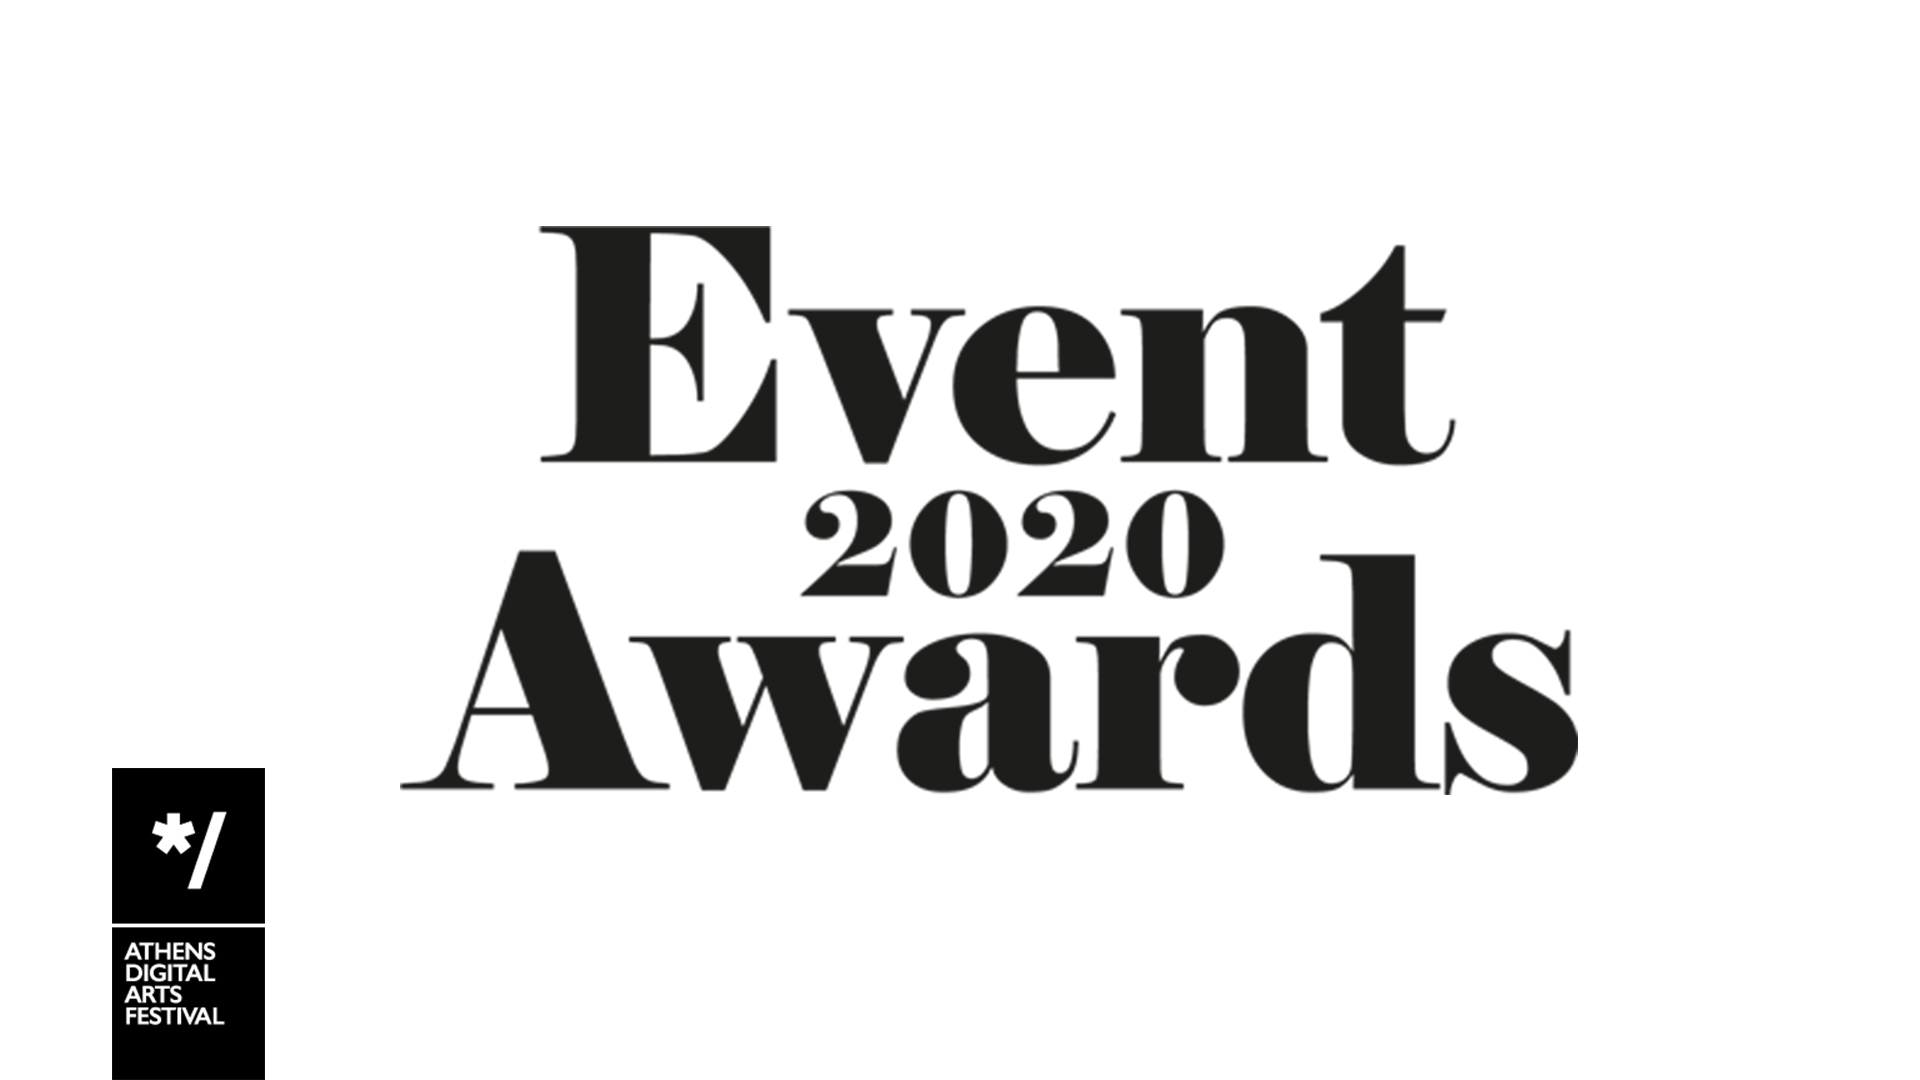 Event Awards 2020